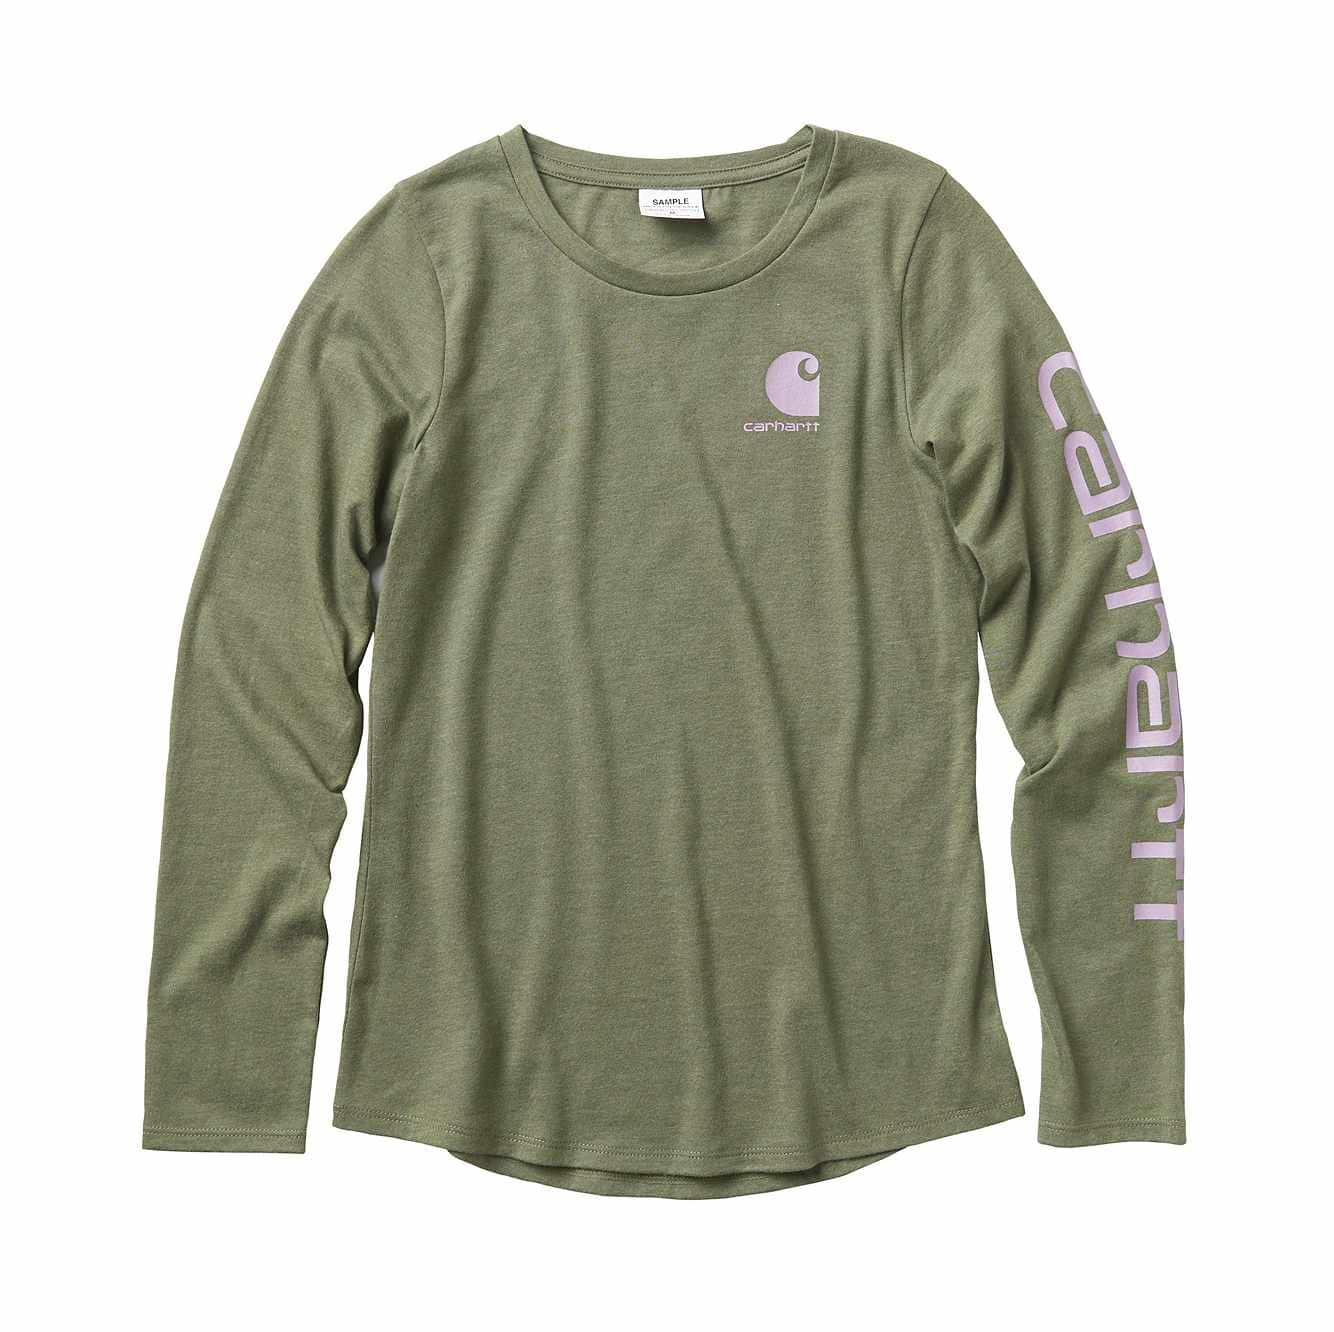 Picture of Carhartt Logo Tee in Olive Heather